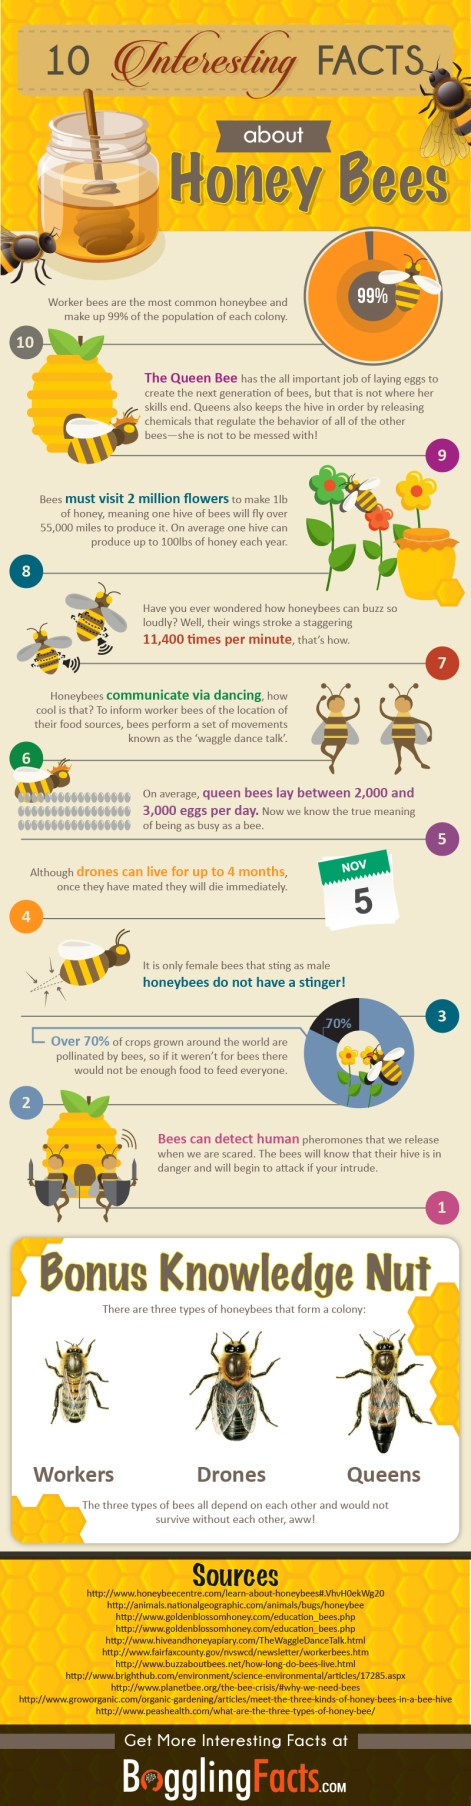 Honey Bees_Interesting Facts